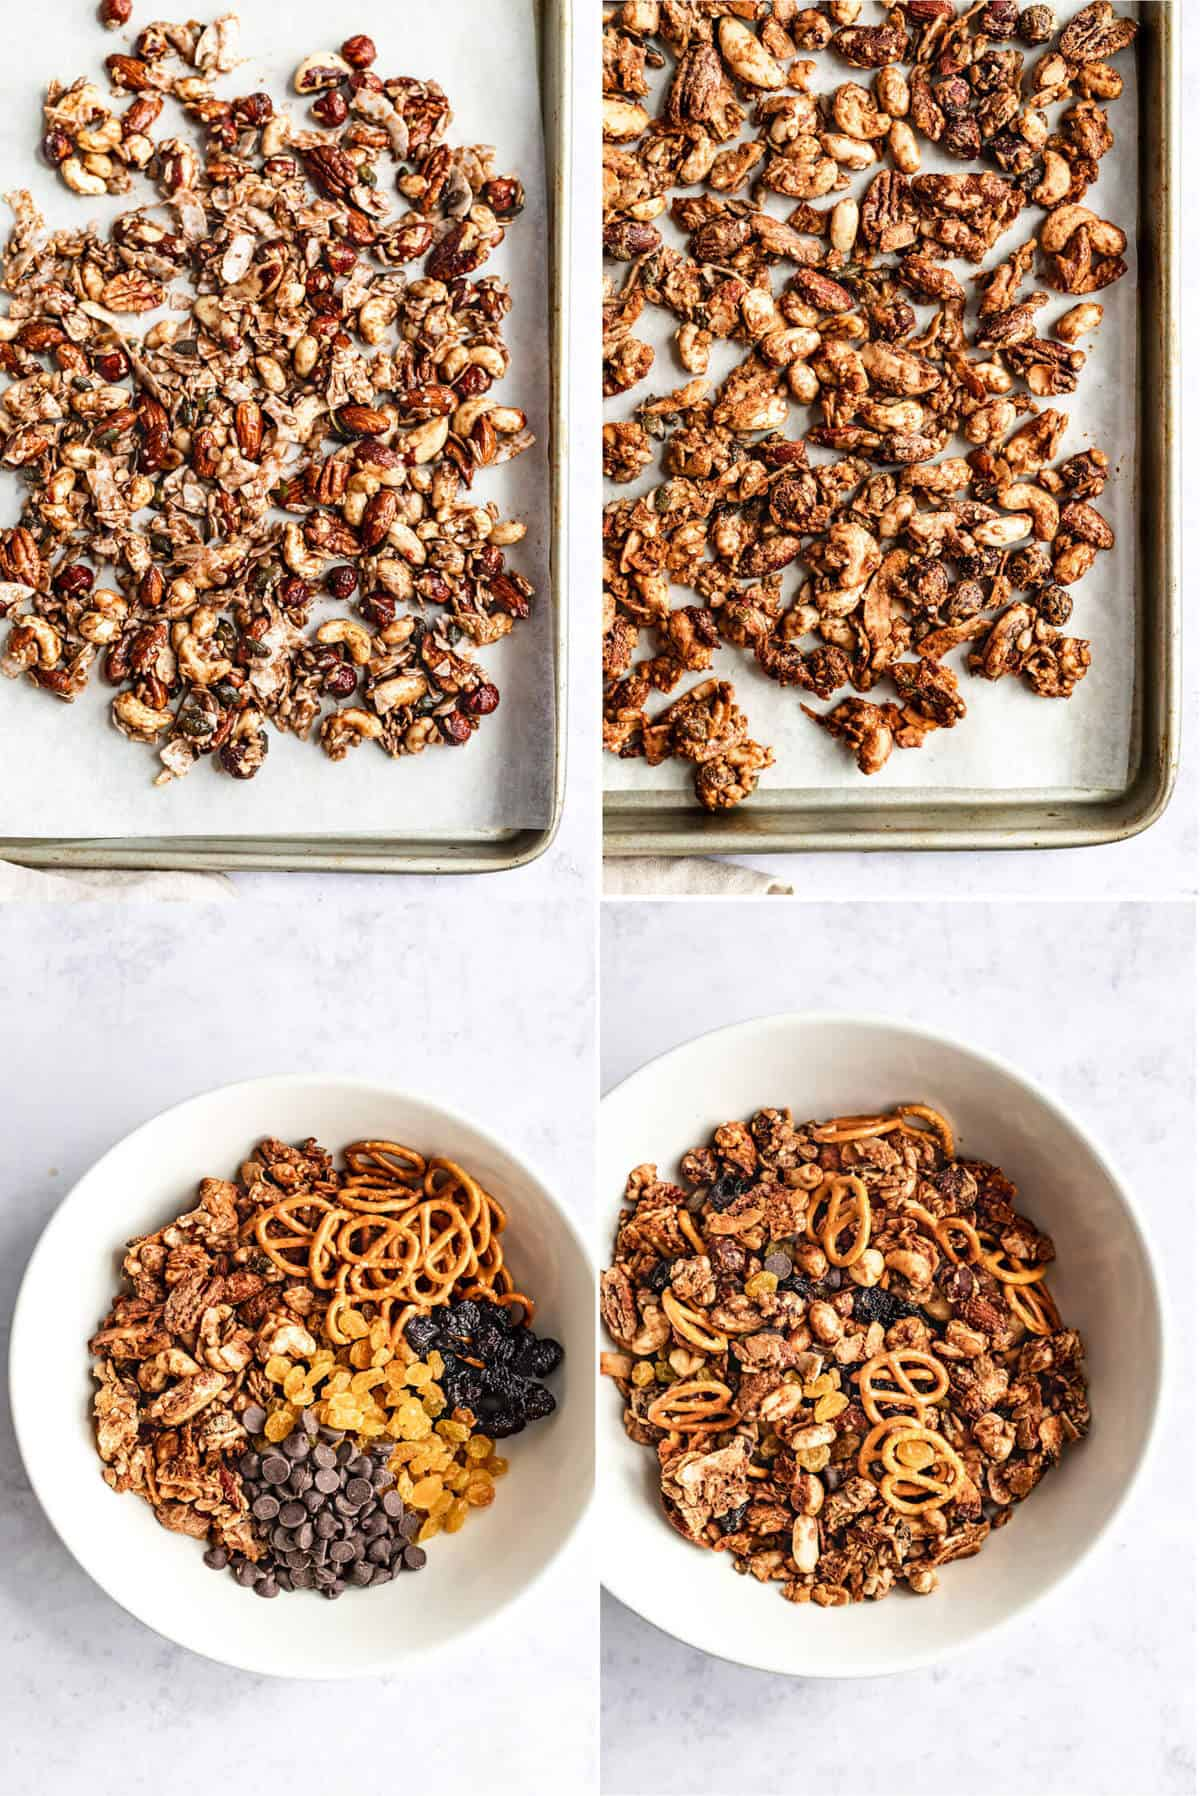 collage showing the process of baking and assembling the maple almond butter snack mix